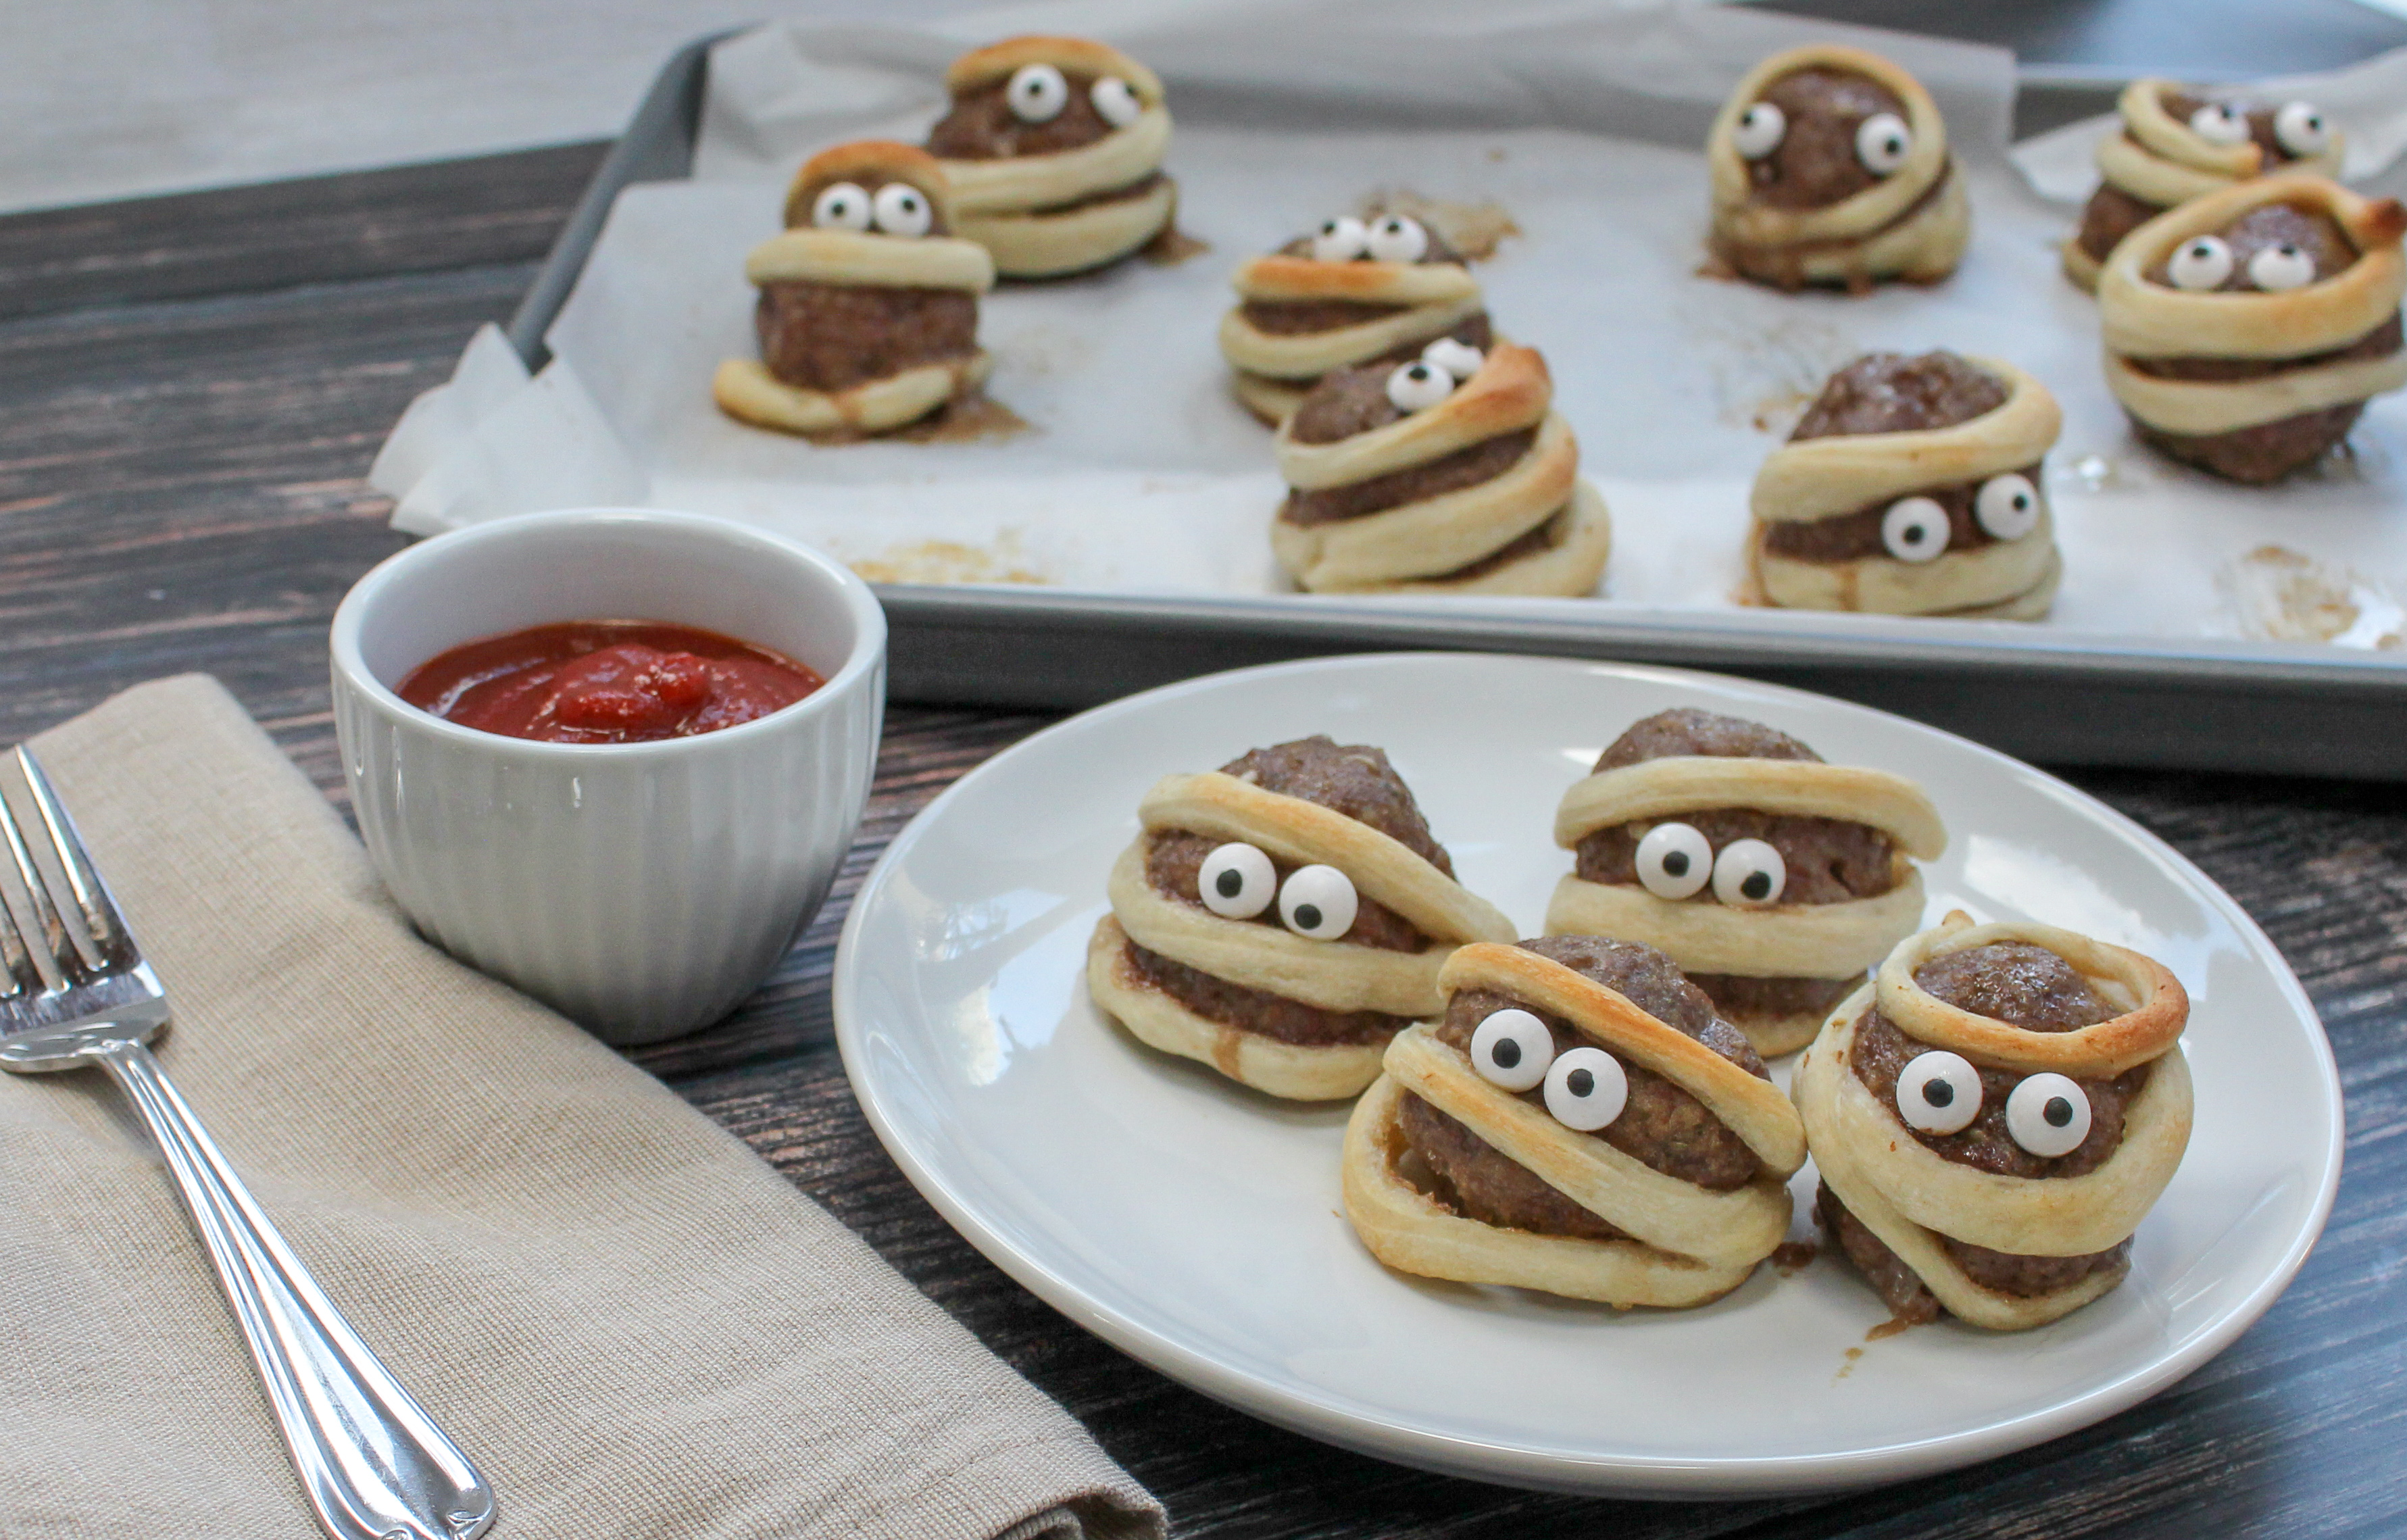 Meatballs wrapped in a strip of dough with candy eyes